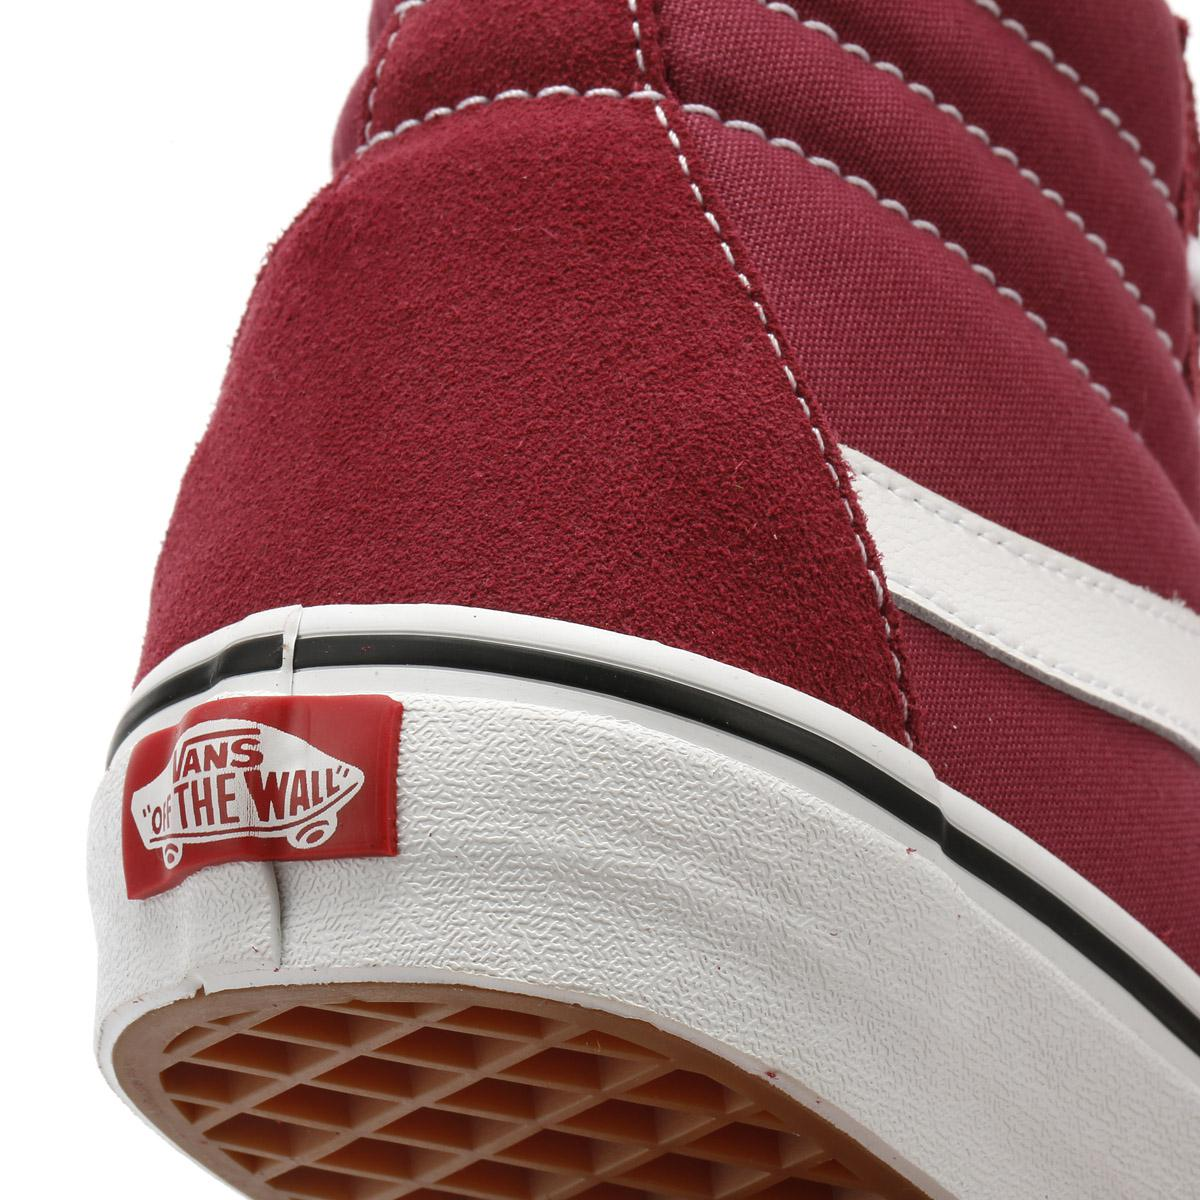 4d89e96708b Vans - Dry Rose Red   True White Sk8-hi Trainers - Lyst. View fullscreen